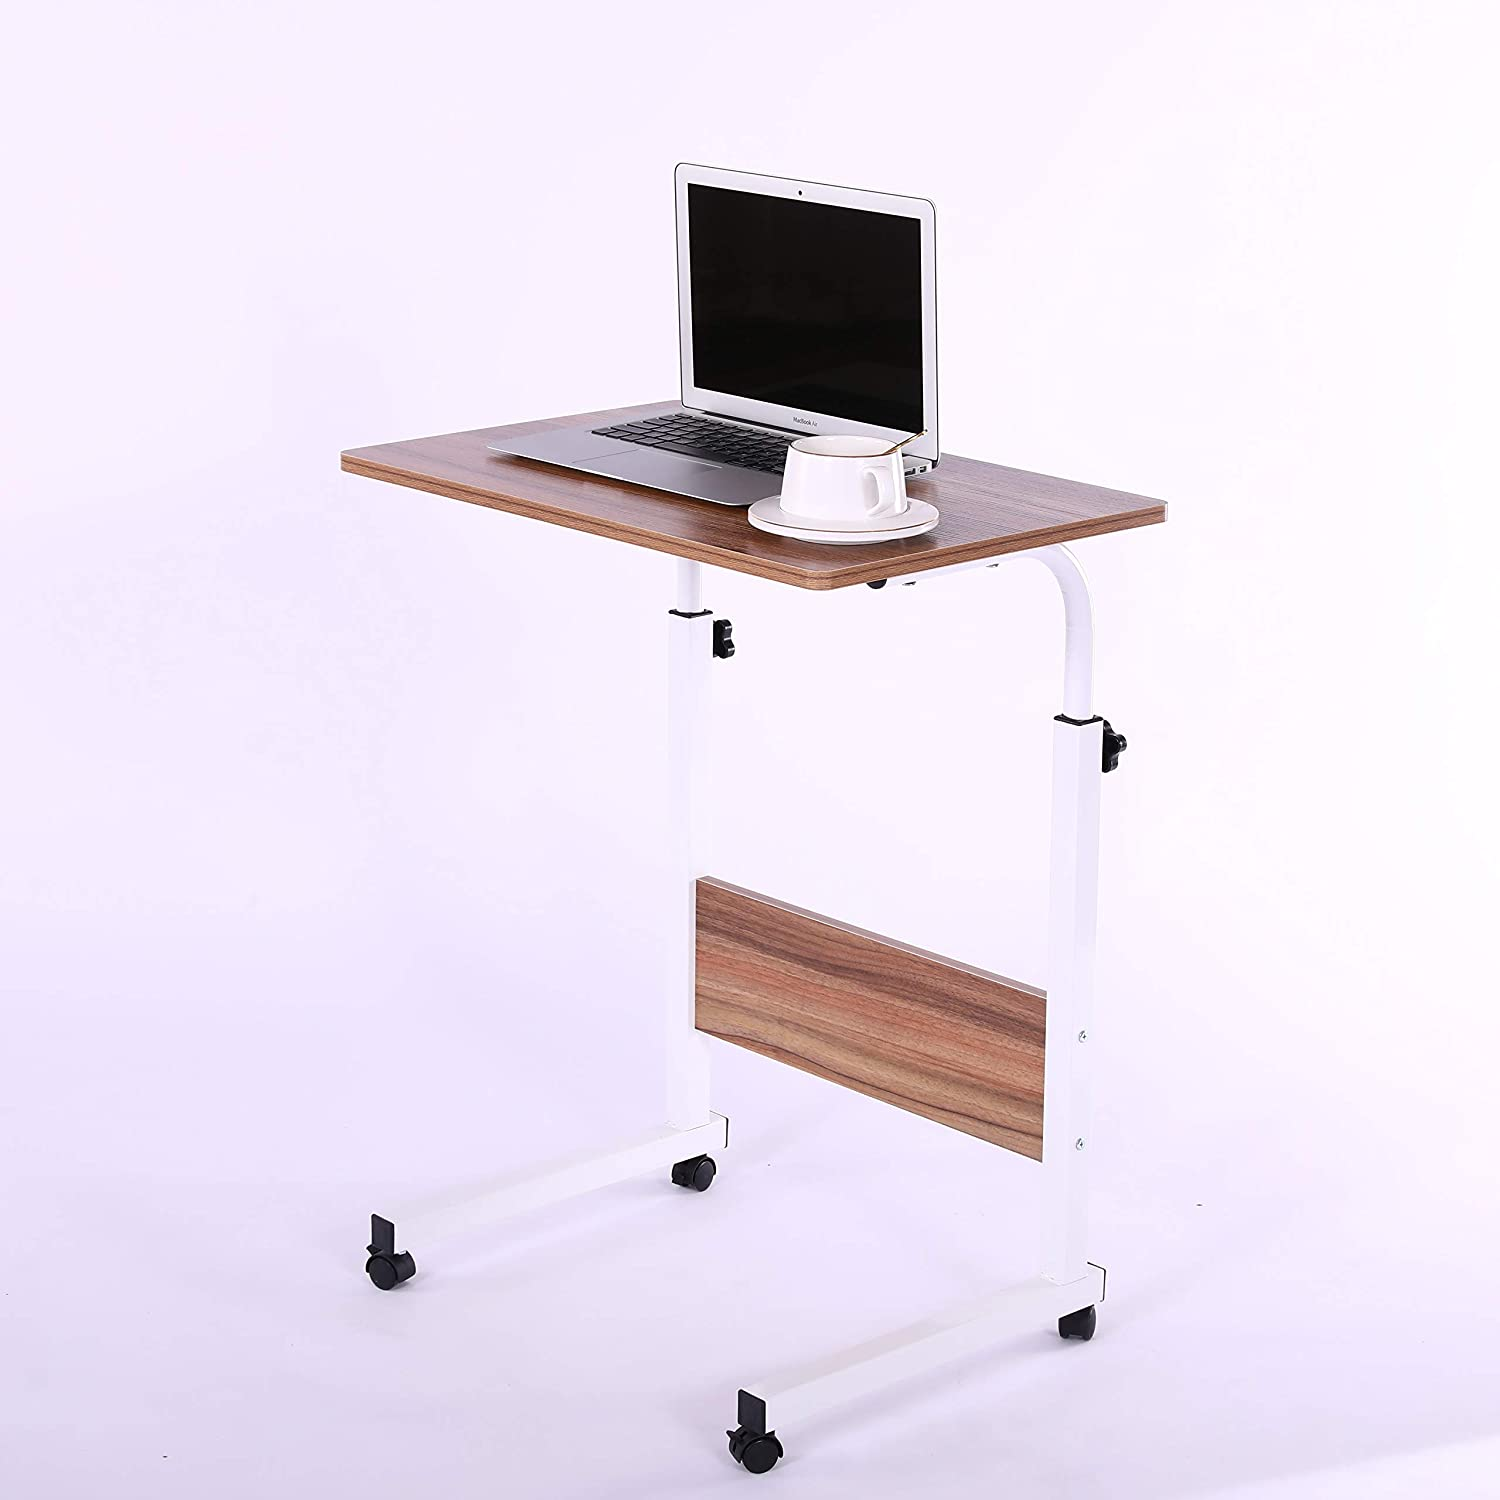 "Laptop Cart 23.6"" Mobile Table Fancasa Movable Portable Adjustable Notebook Computer Stand with Wheels (Teak)"